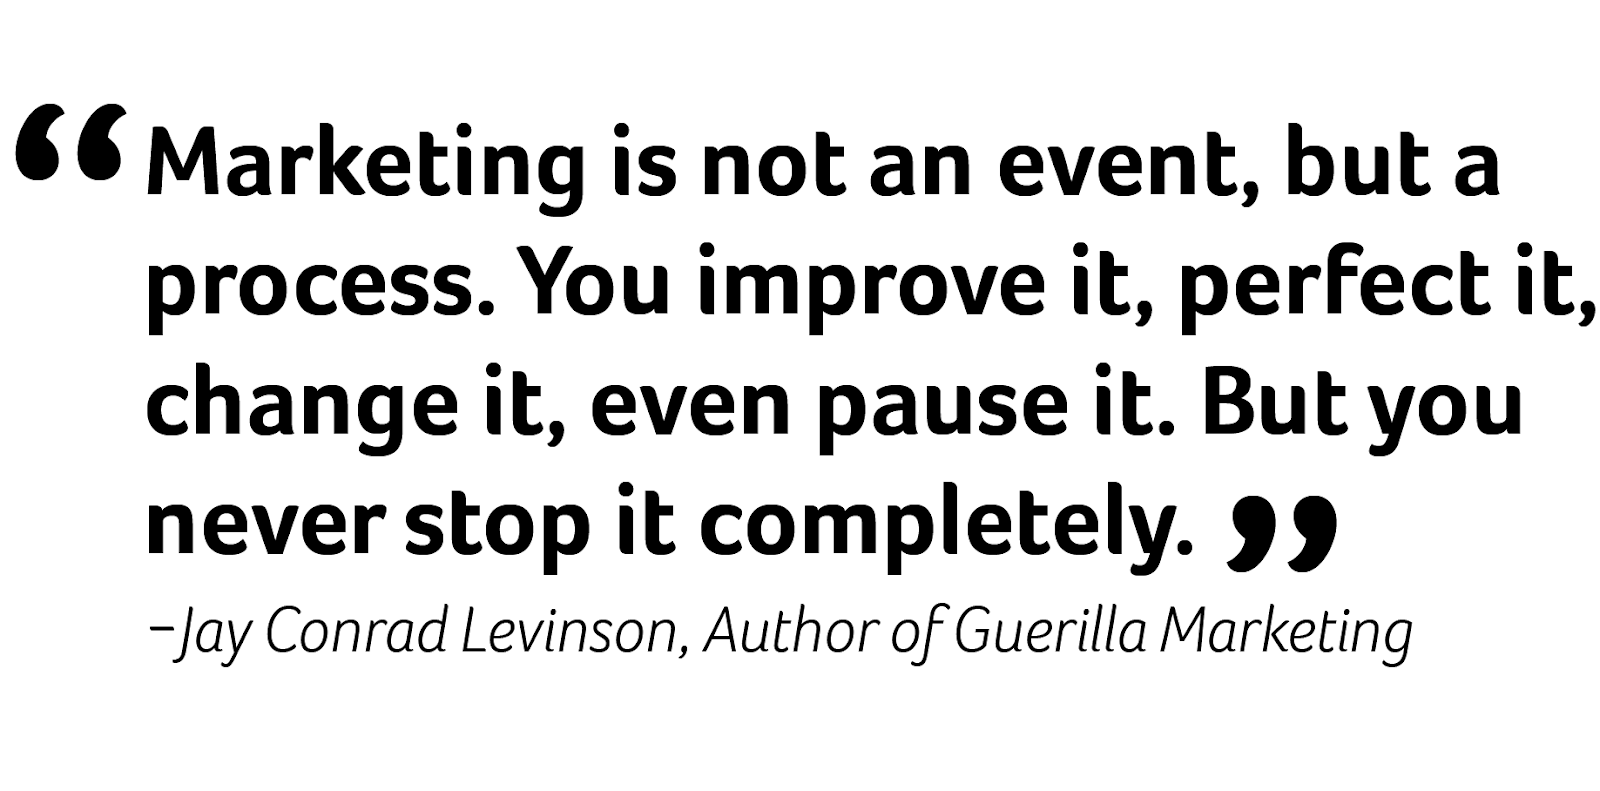 jay conrad levinson quote - marketing is not an event, but a process. you improve it, perfect it, change it, even pause it. But you never stop it completely.